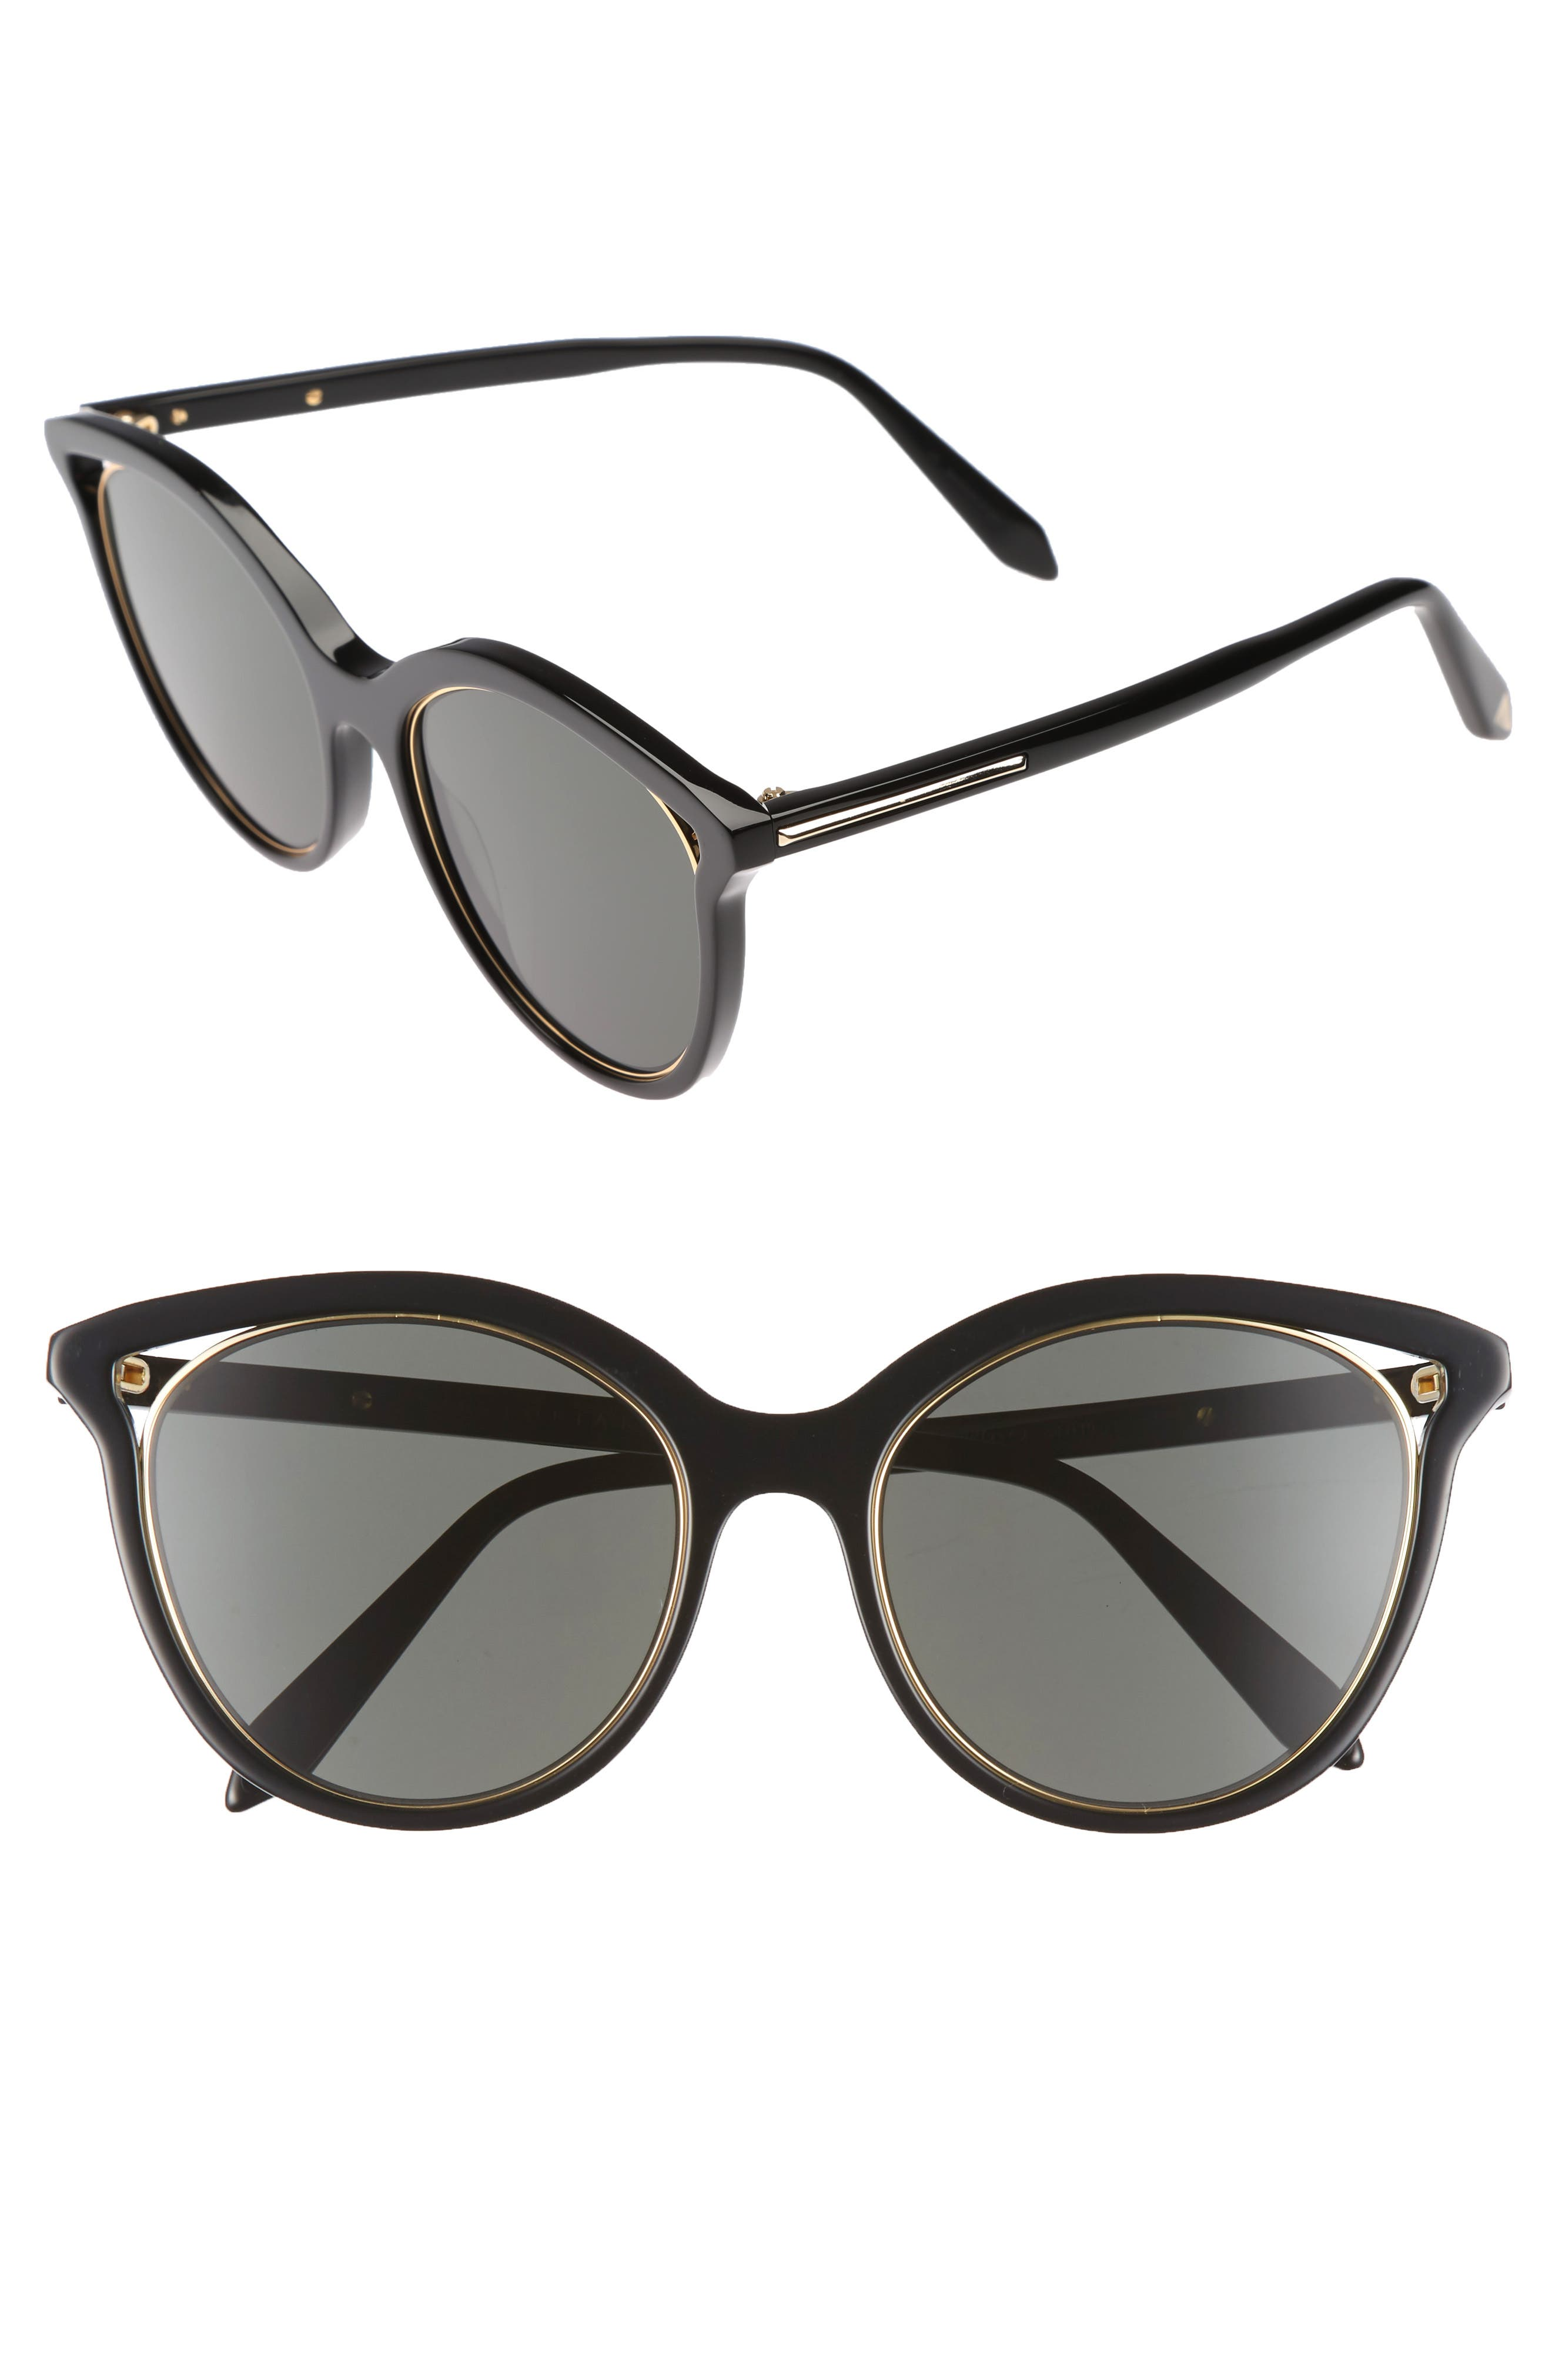 Cutaway Kitten 54mm Cat Eye Sunglasses,                             Main thumbnail 1, color,                             BLACK/ GOLD